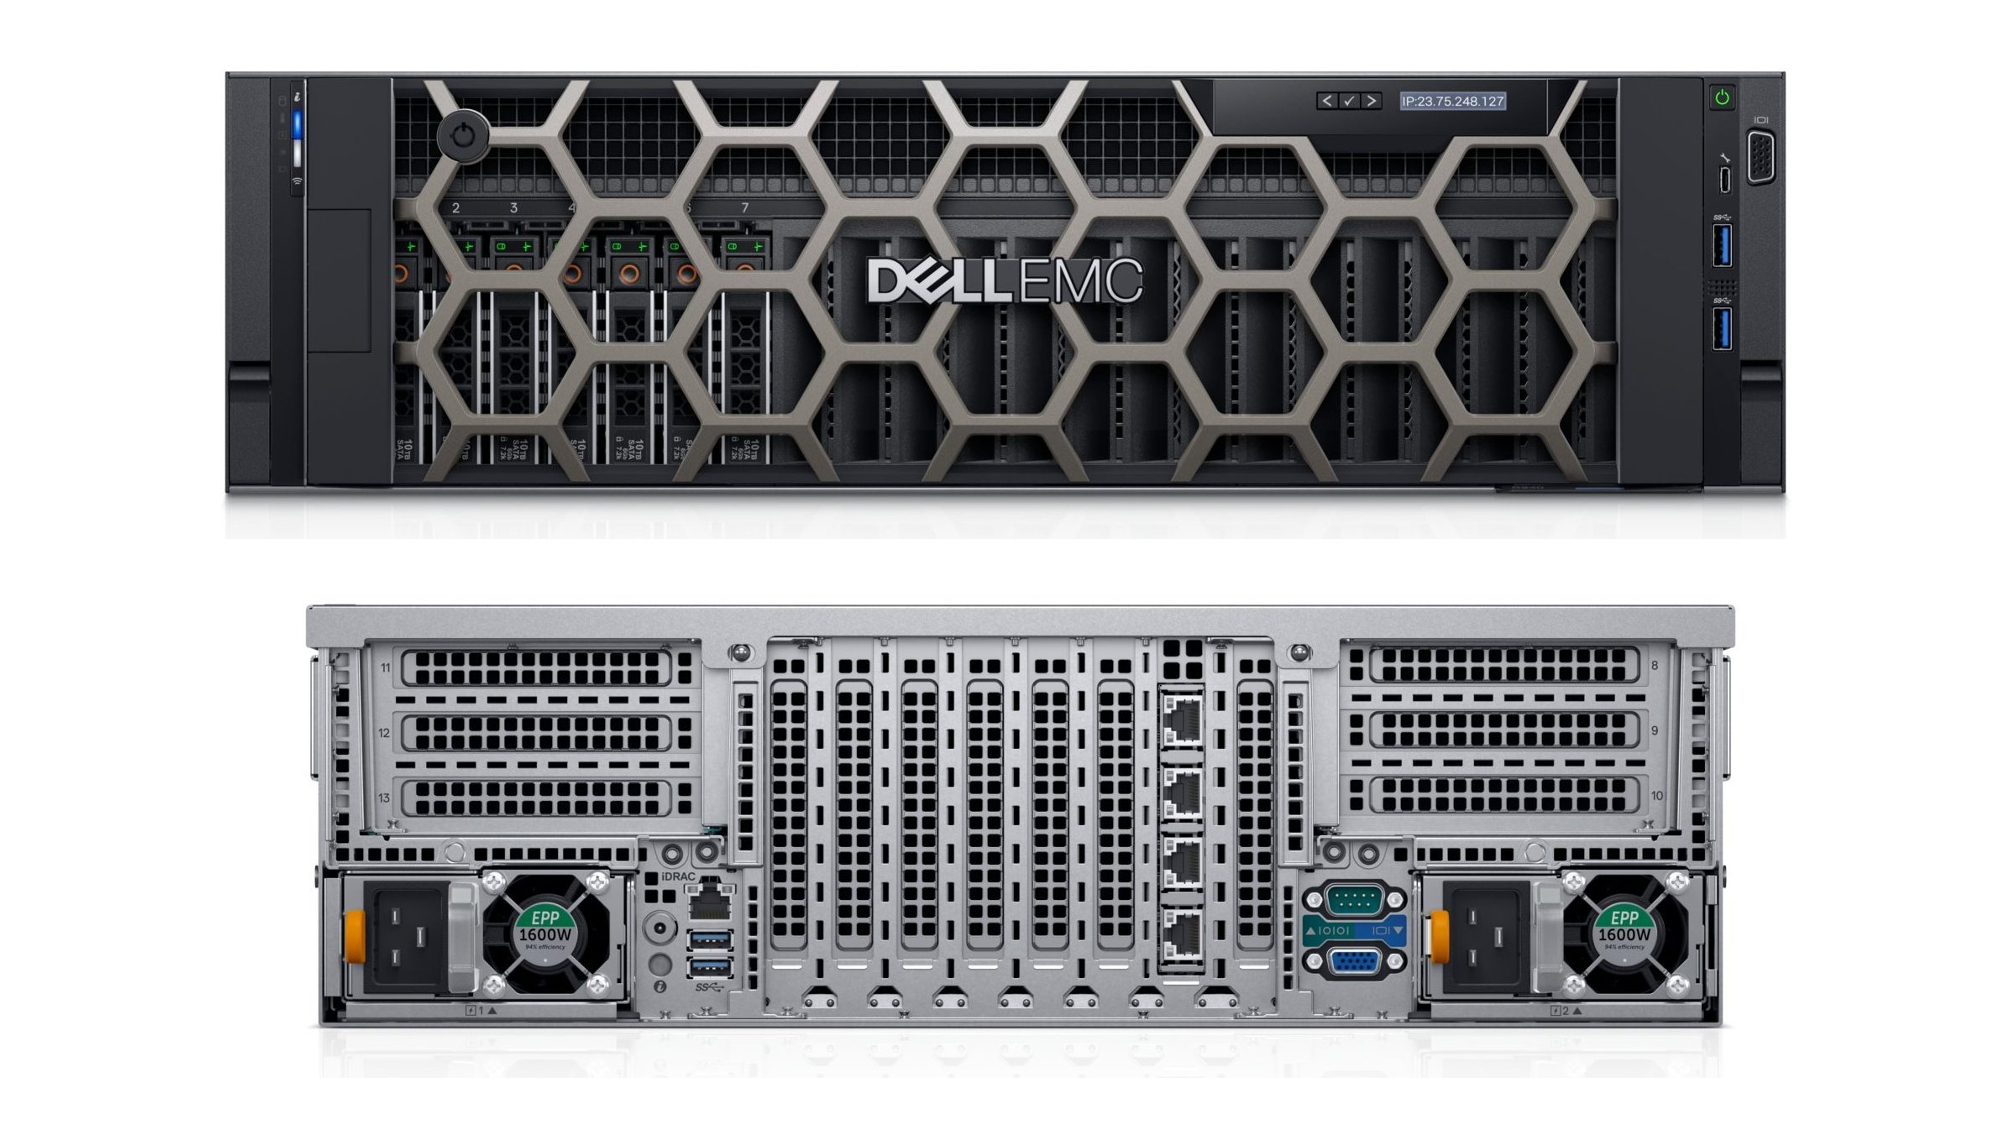 Dell EMC PowerEdge R940 review: A beast of a server | IT PRO